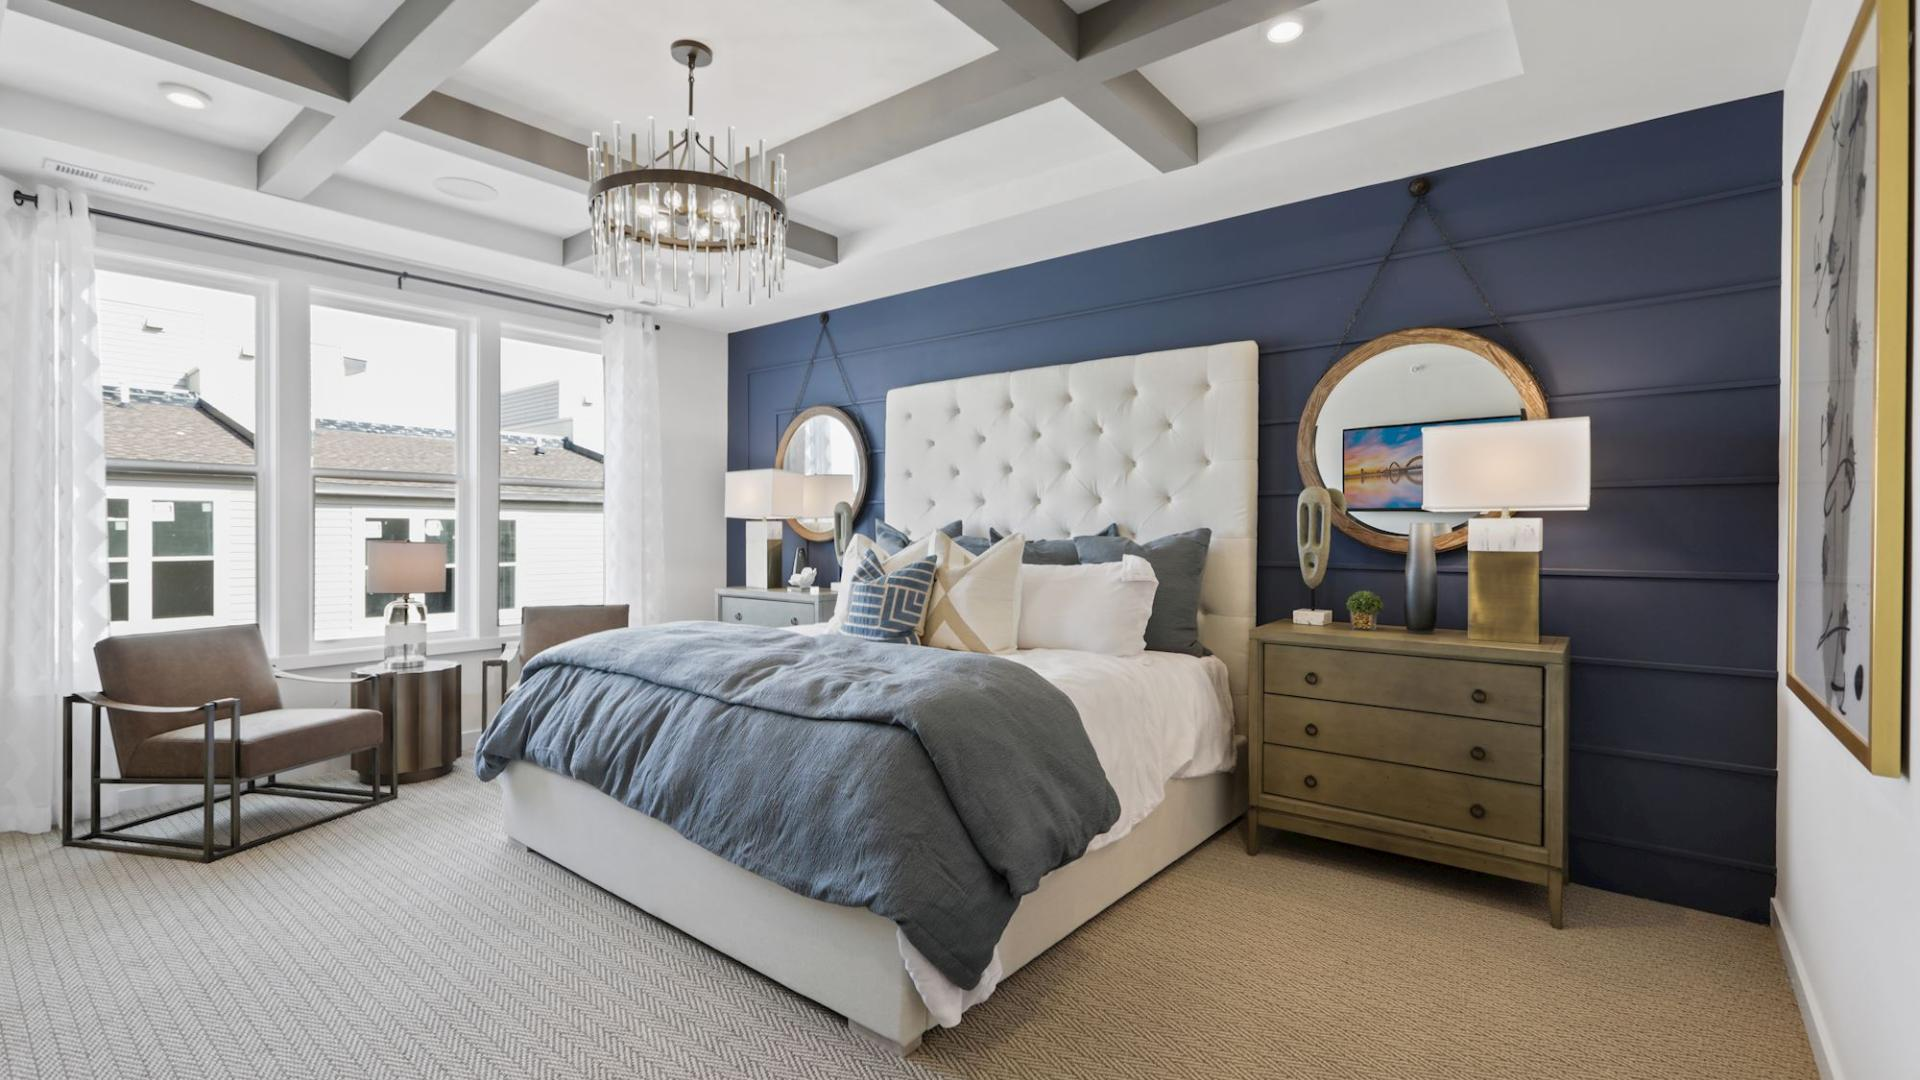 Model home primary suite